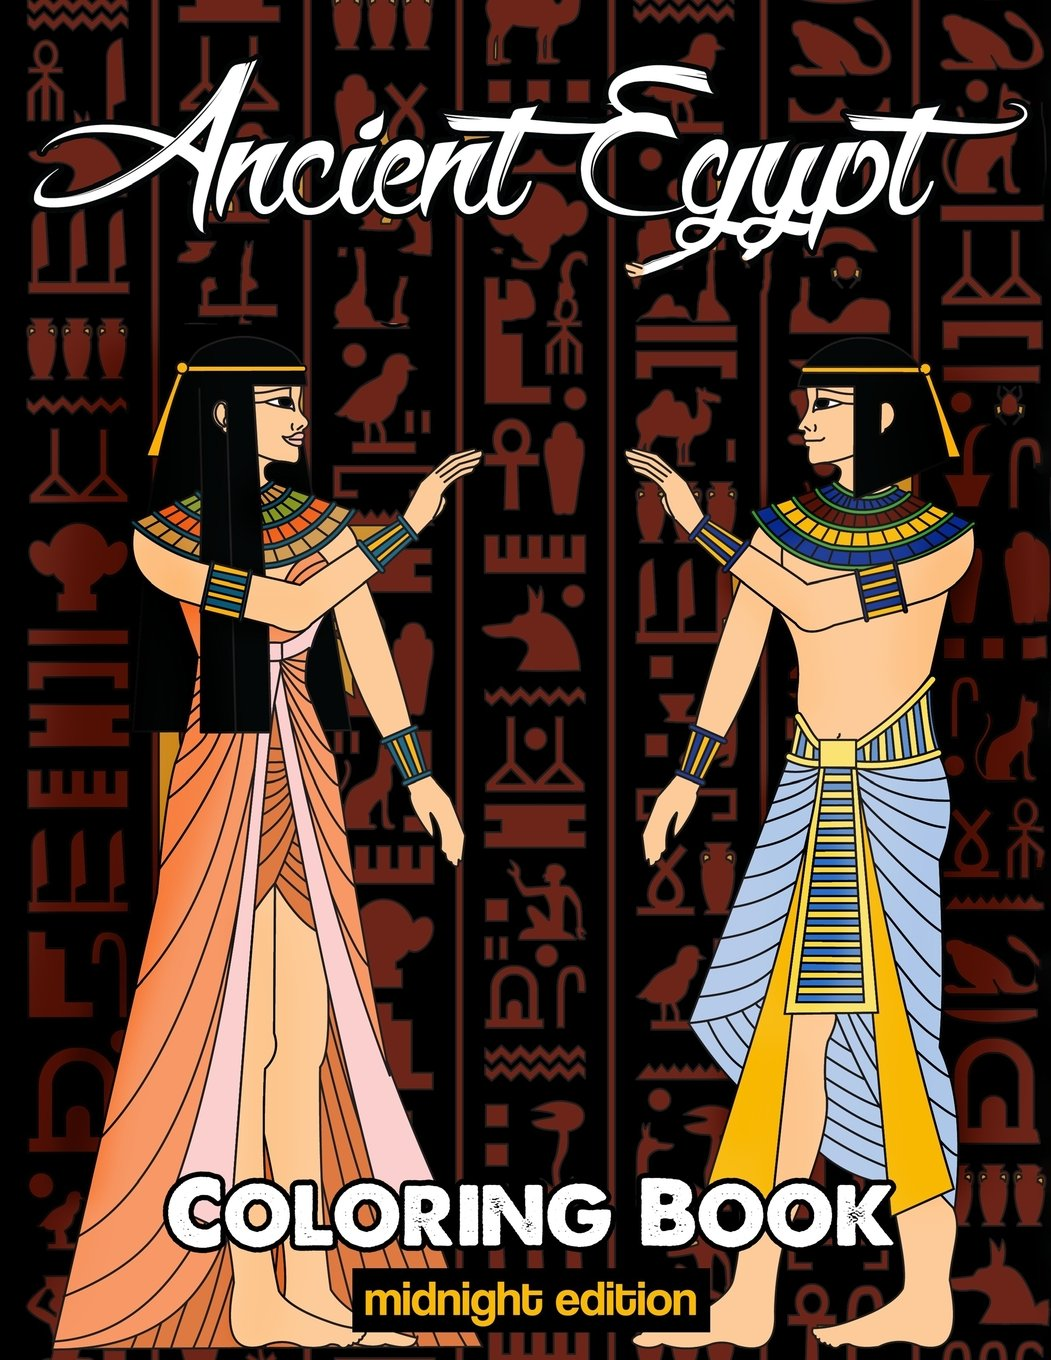 Ancient Egypt Coloring Book Midnight Edition: Relieve Stress and Have Fun  with Egyptian Symbols, Gods, Hieroglyphics, and Pharaohs (Printed on Black  Backgrounds) (Egyptian Coloring Book) (Volume 2): Swanson, Megan:  9781717397140: Amazon.com: Books